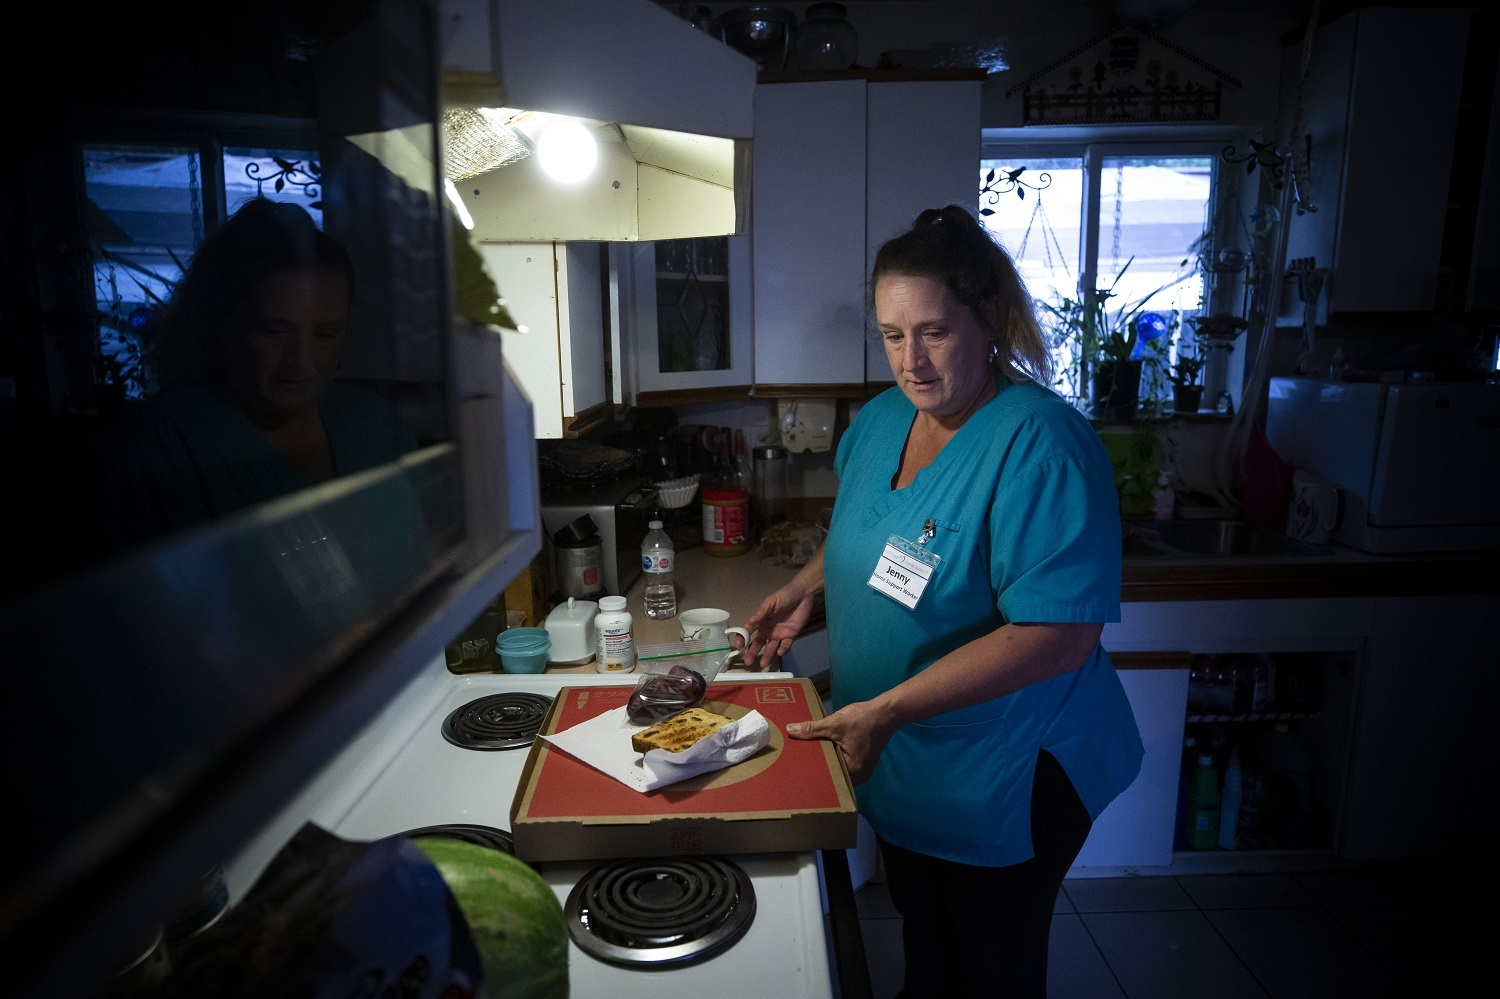 Jenny Kaastra, based in the Fraser Valley, works three jobs as a care worker. (Ben Nelms/CBC)